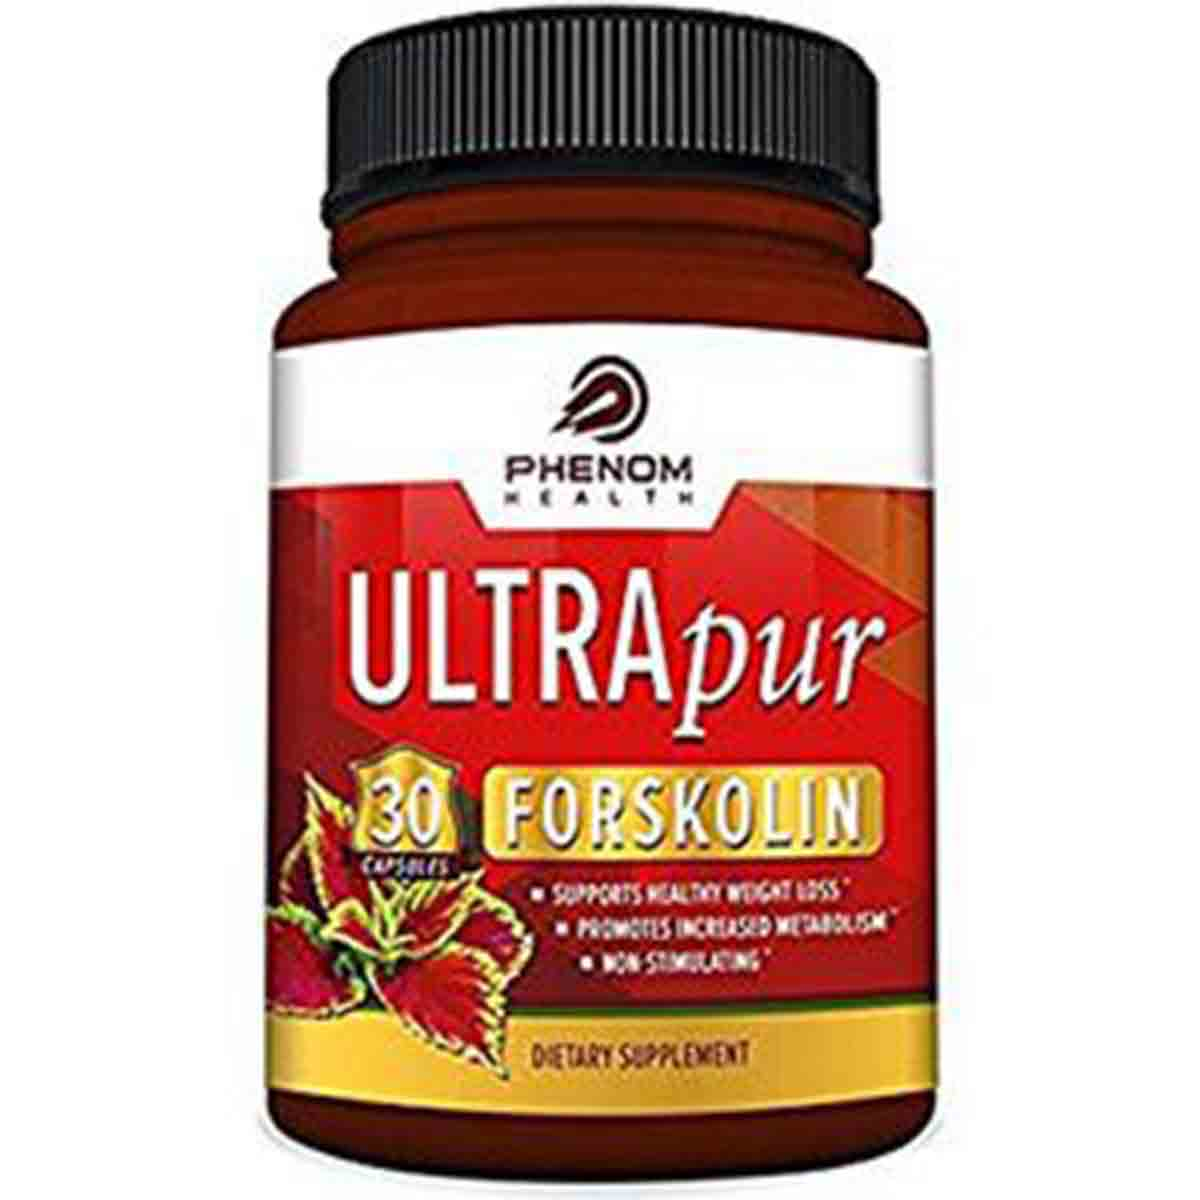 UltraPur Forskolin